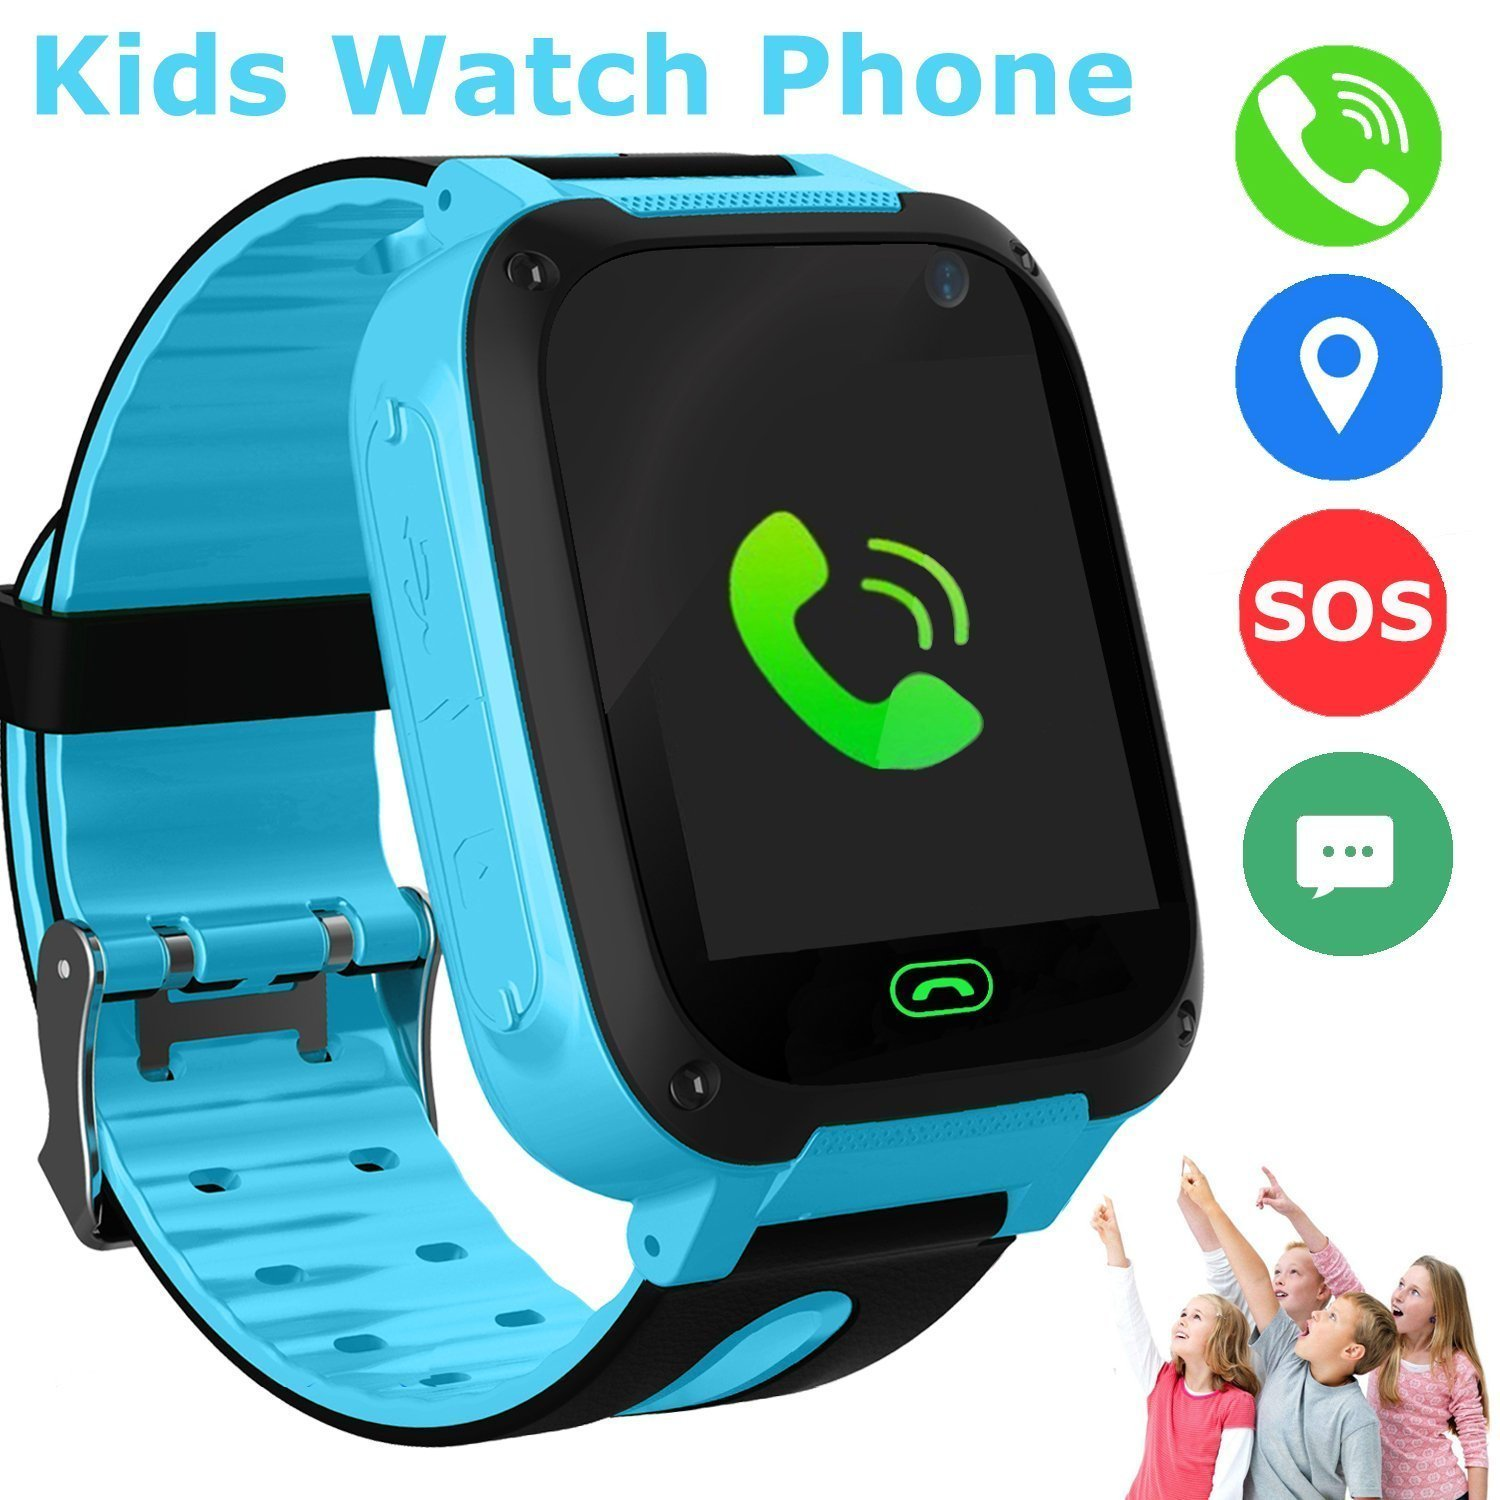 Kids Smart Watch Phone, LBS/GPS Tracker Smart Watch for 3-12 Year Old Boys Girls with SOS Camera Sim Card Slot Touch Screen Game Smartwatch Outdoor ...